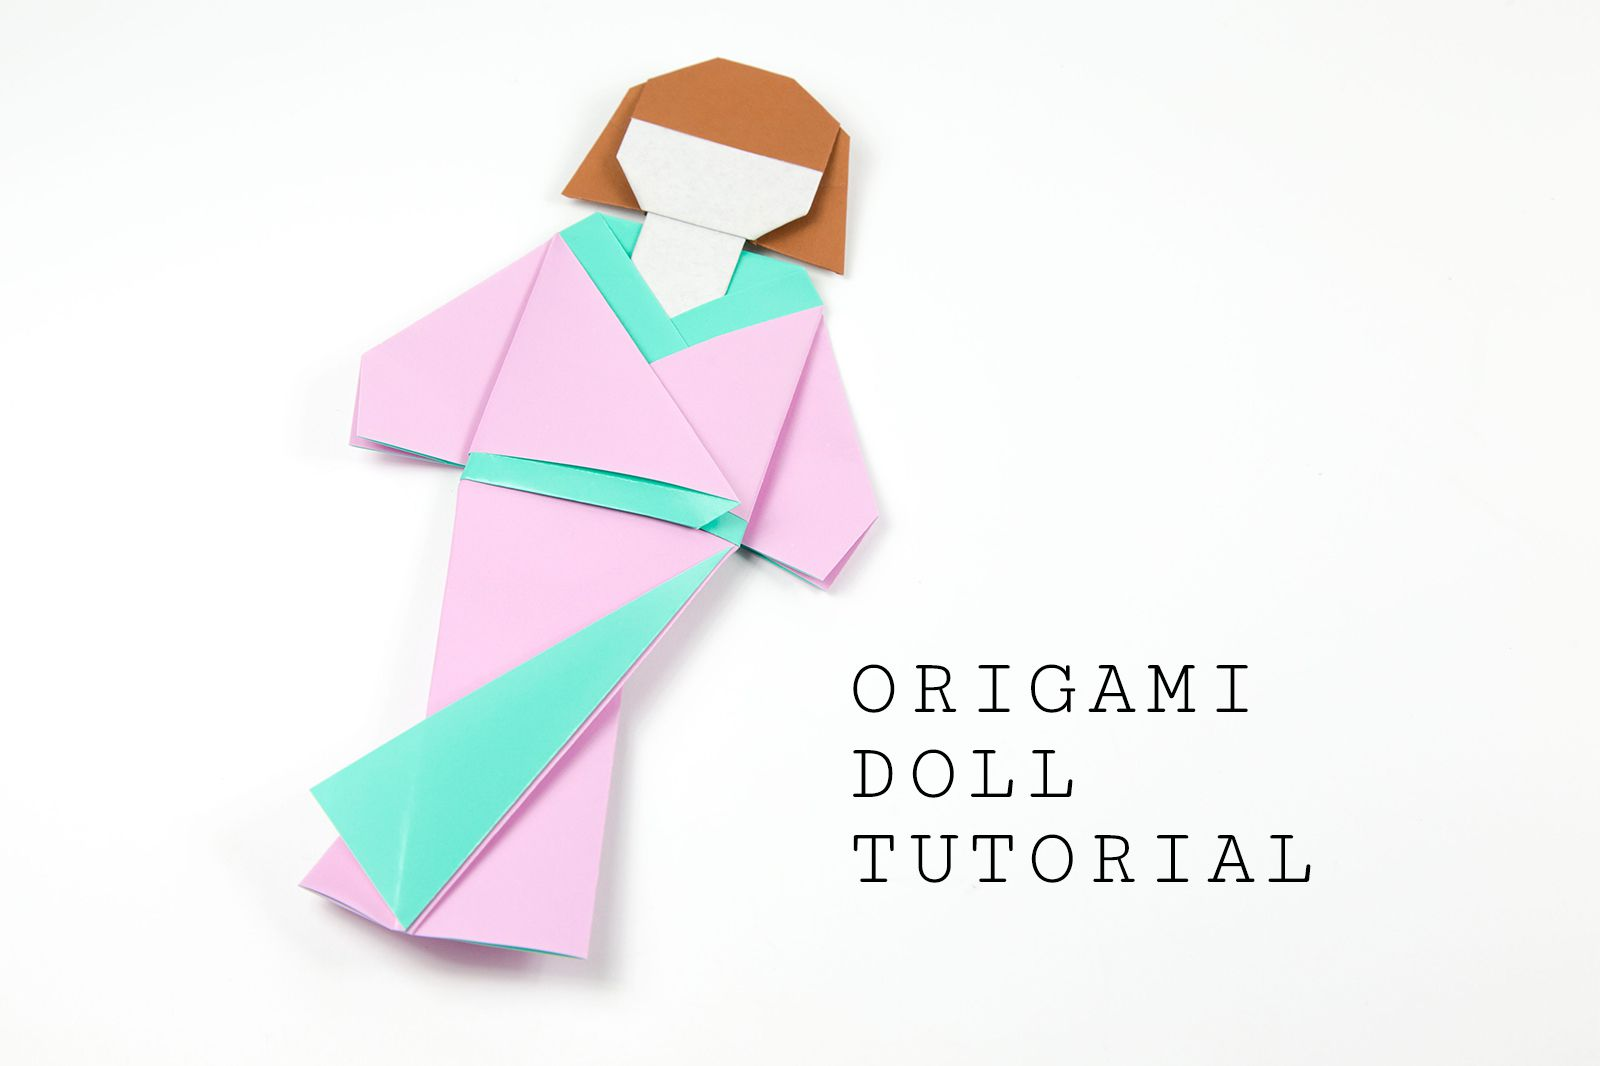 Japanese Origami Doll Tutorial